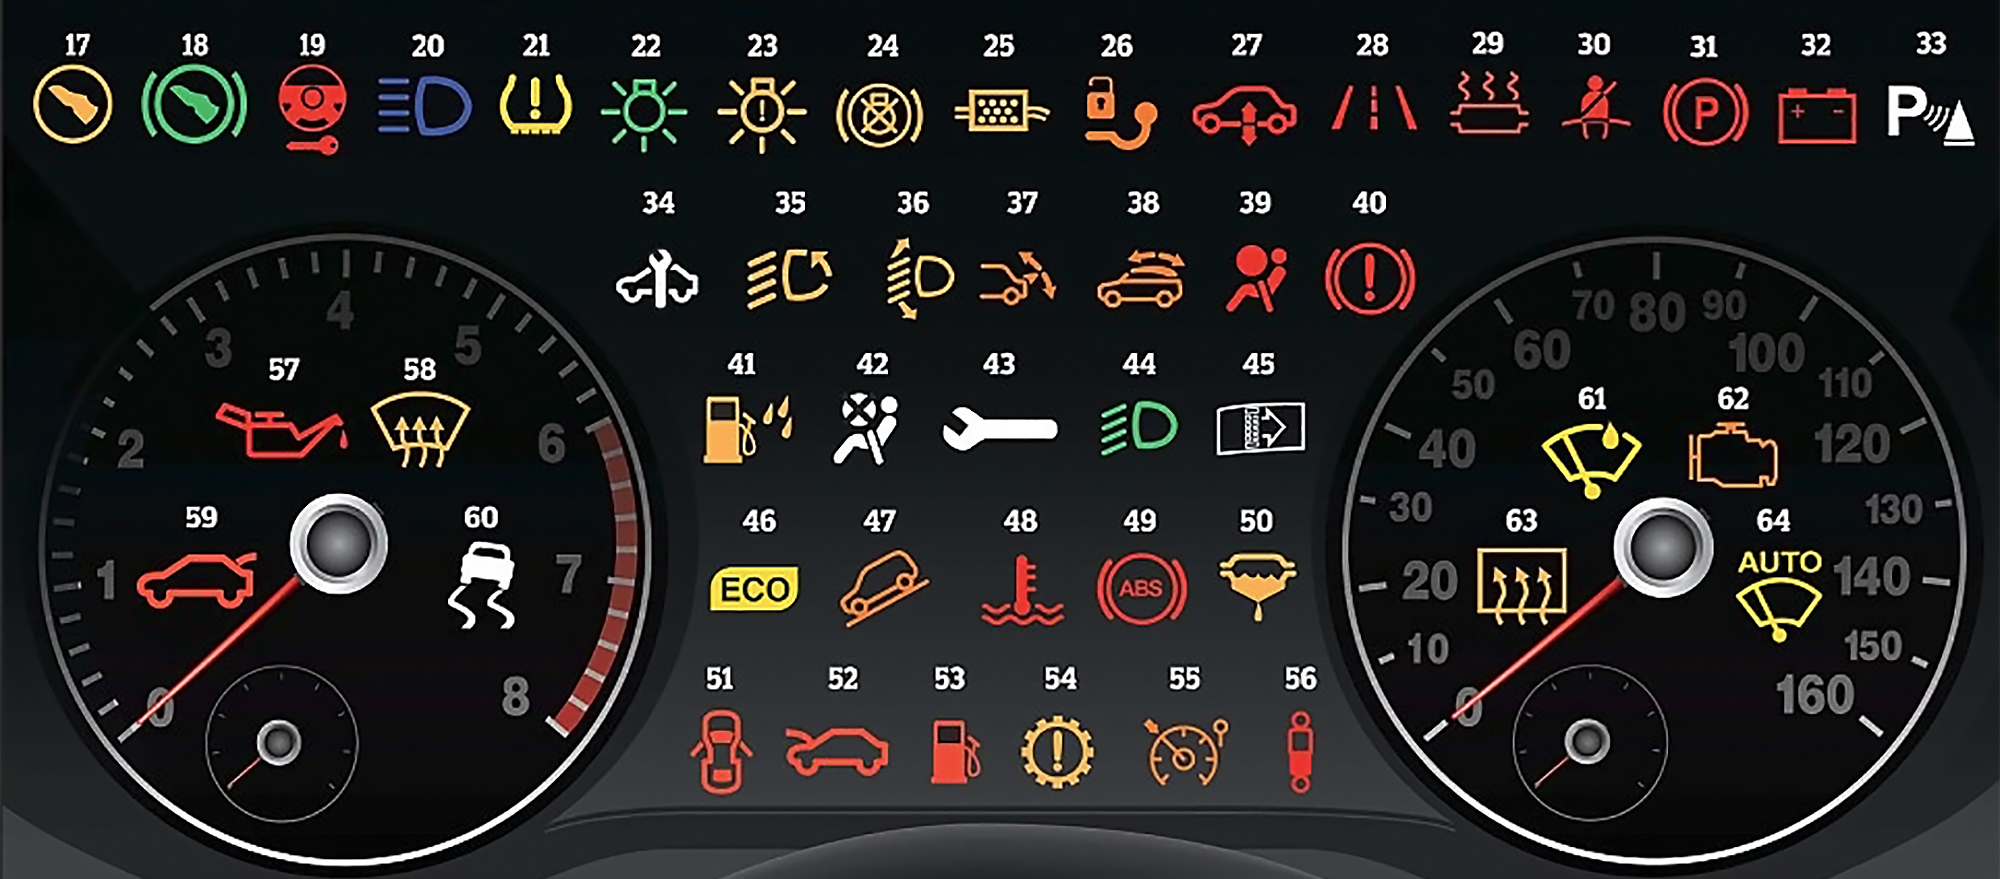 Infographic: Vehicle Warning Lights | RECOIL OFFGRID